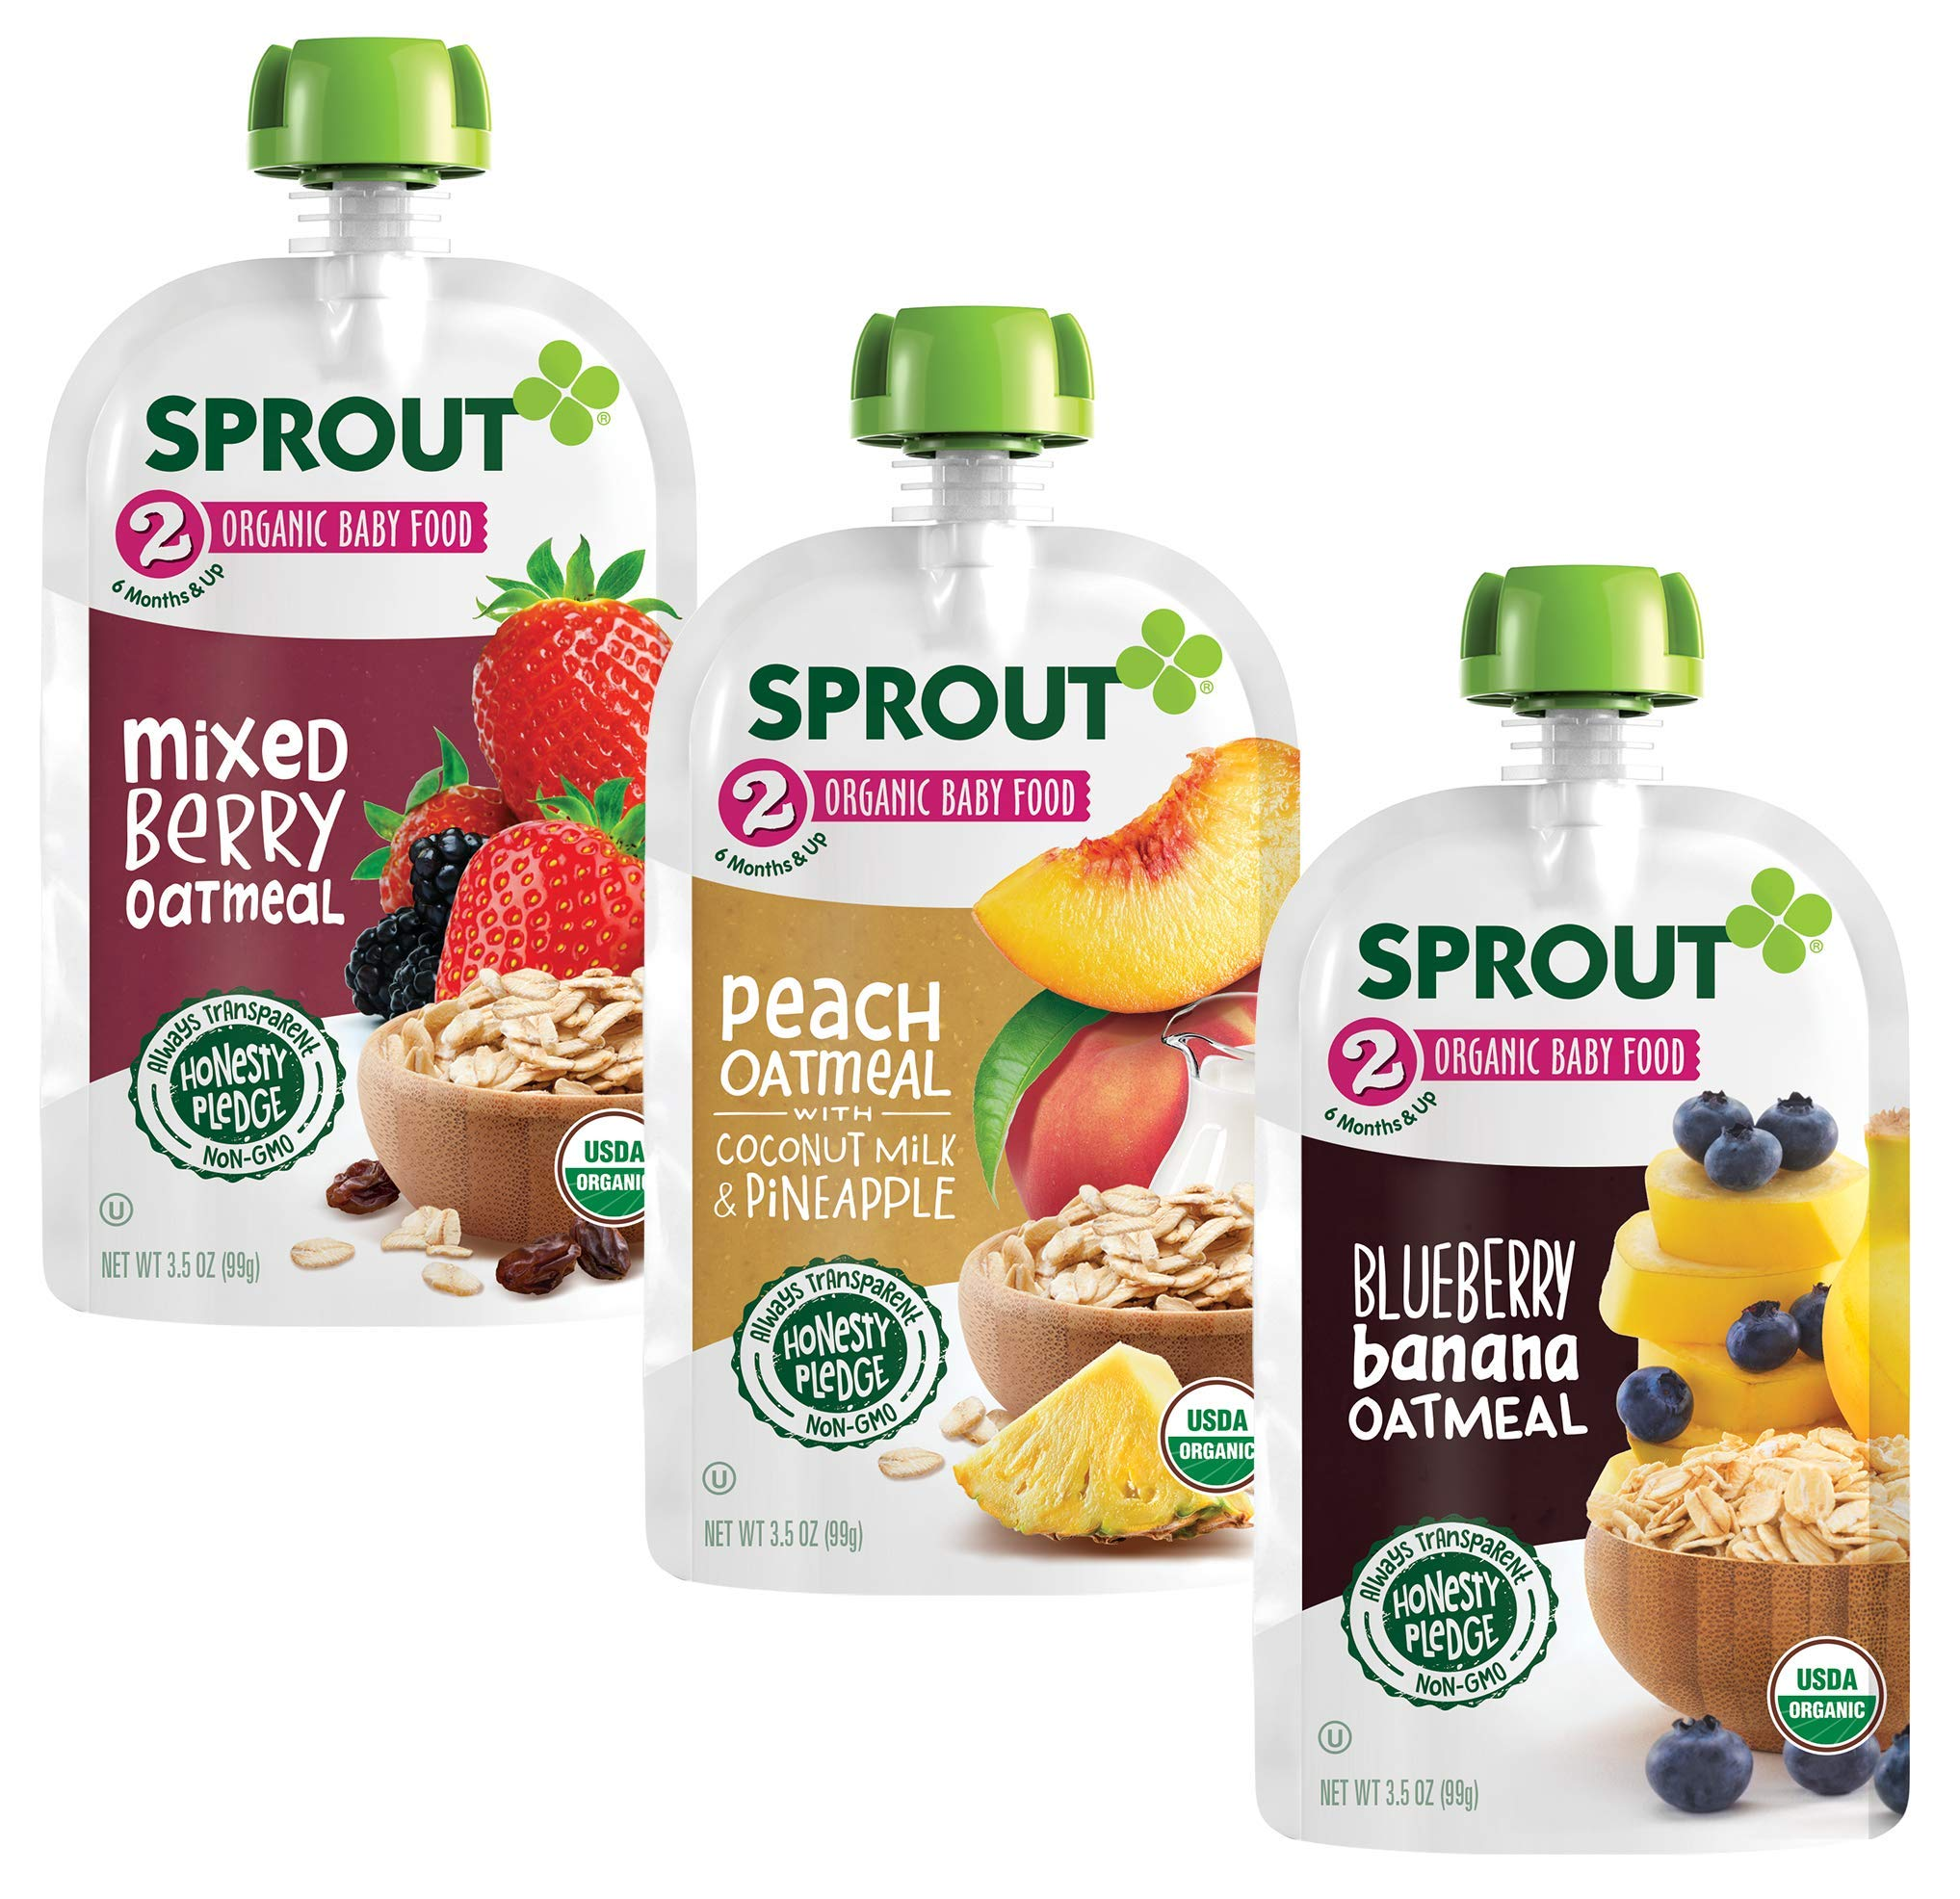 Sprout Organic Baby Food Pouches, Stage 2 Oatmeal Variety (Pack of 18); 6 (3.5 oz) Blueberry Banana oatmeal,  6 (3.5 oz) Mixed Berry Oatmeal, 6 (3.5 oz) Peach Oatmeal with Coconut Milk & Pineapple